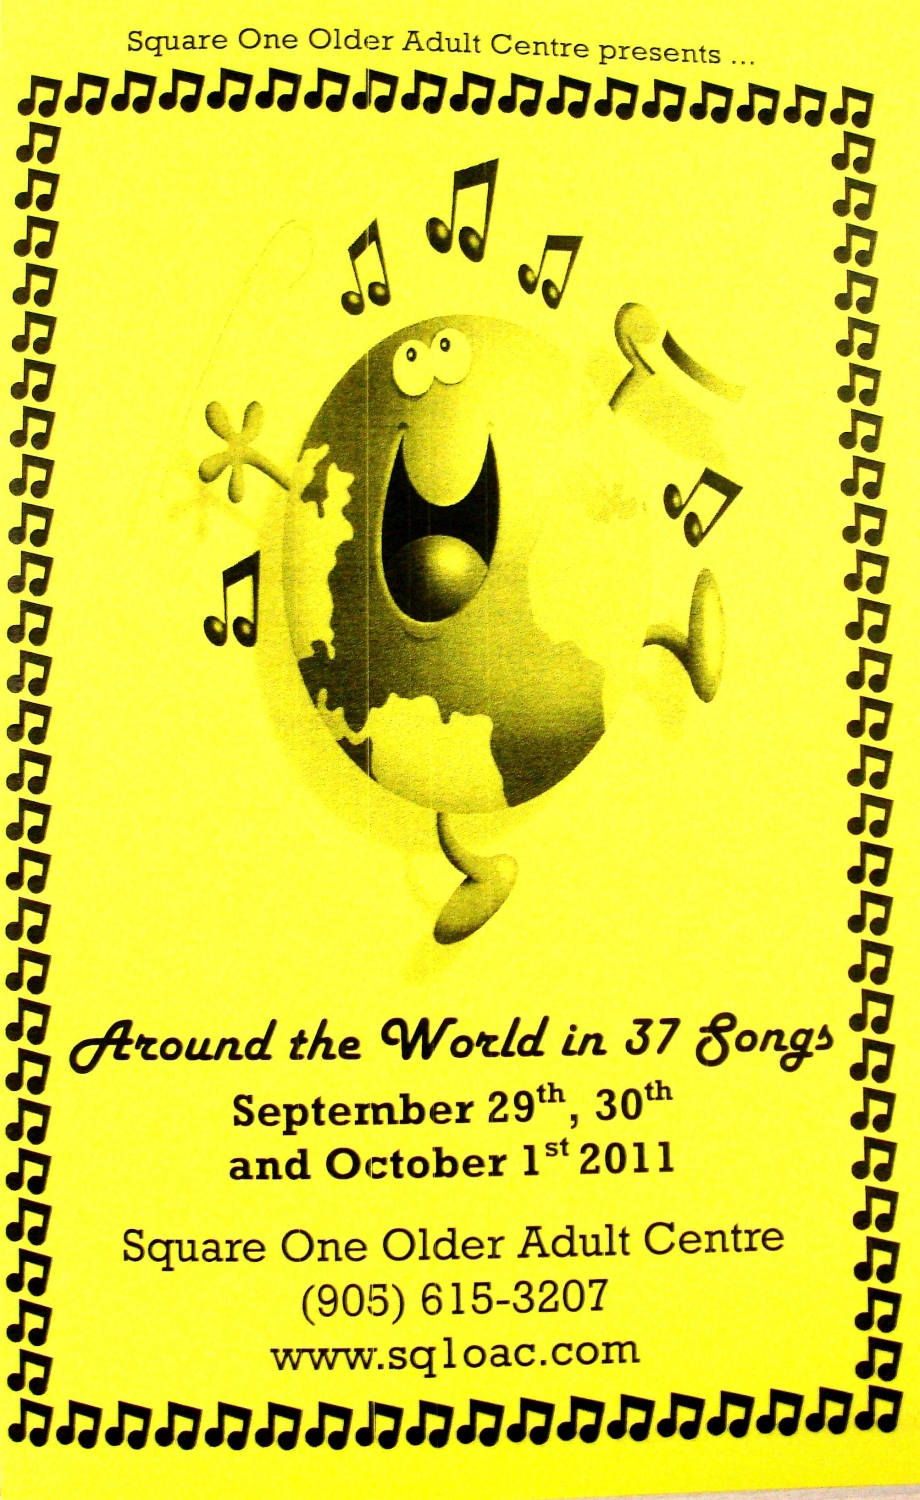 Around the World in 37 Songs adapted from Music Around the World Google image from http://1.bp.blogspot.com/_abwexzQx0bo/Swi4Njt4K-I/AAAAAAAAAi4/jC3b1boppsQ/s400/World+Music.jpg